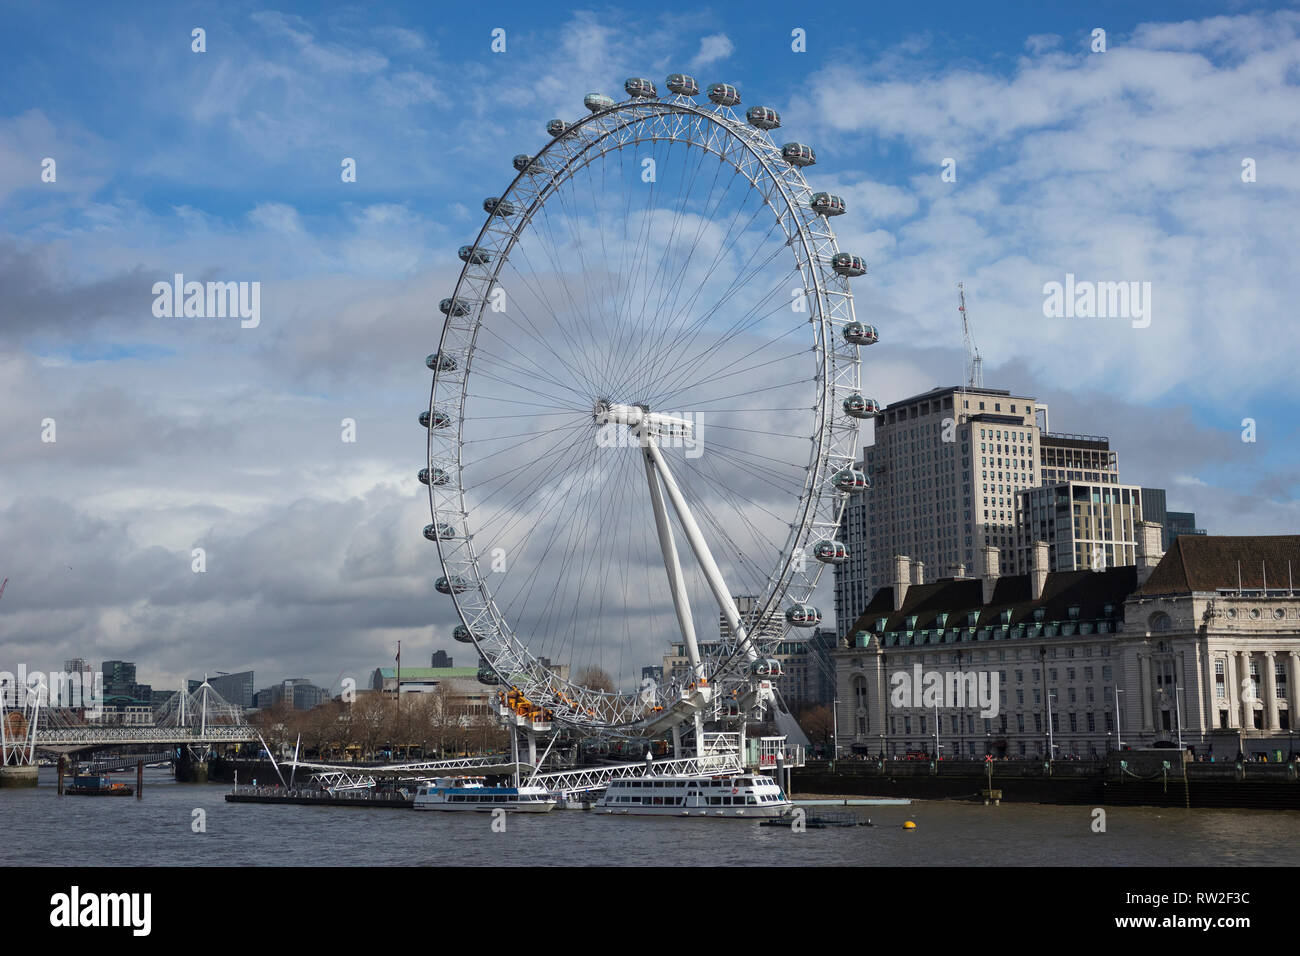 London, England - 28. Februar 2019: London Eye oder Millennium Wheel an der South Bank der Themse in London, England, Grossbritannien Stockbild